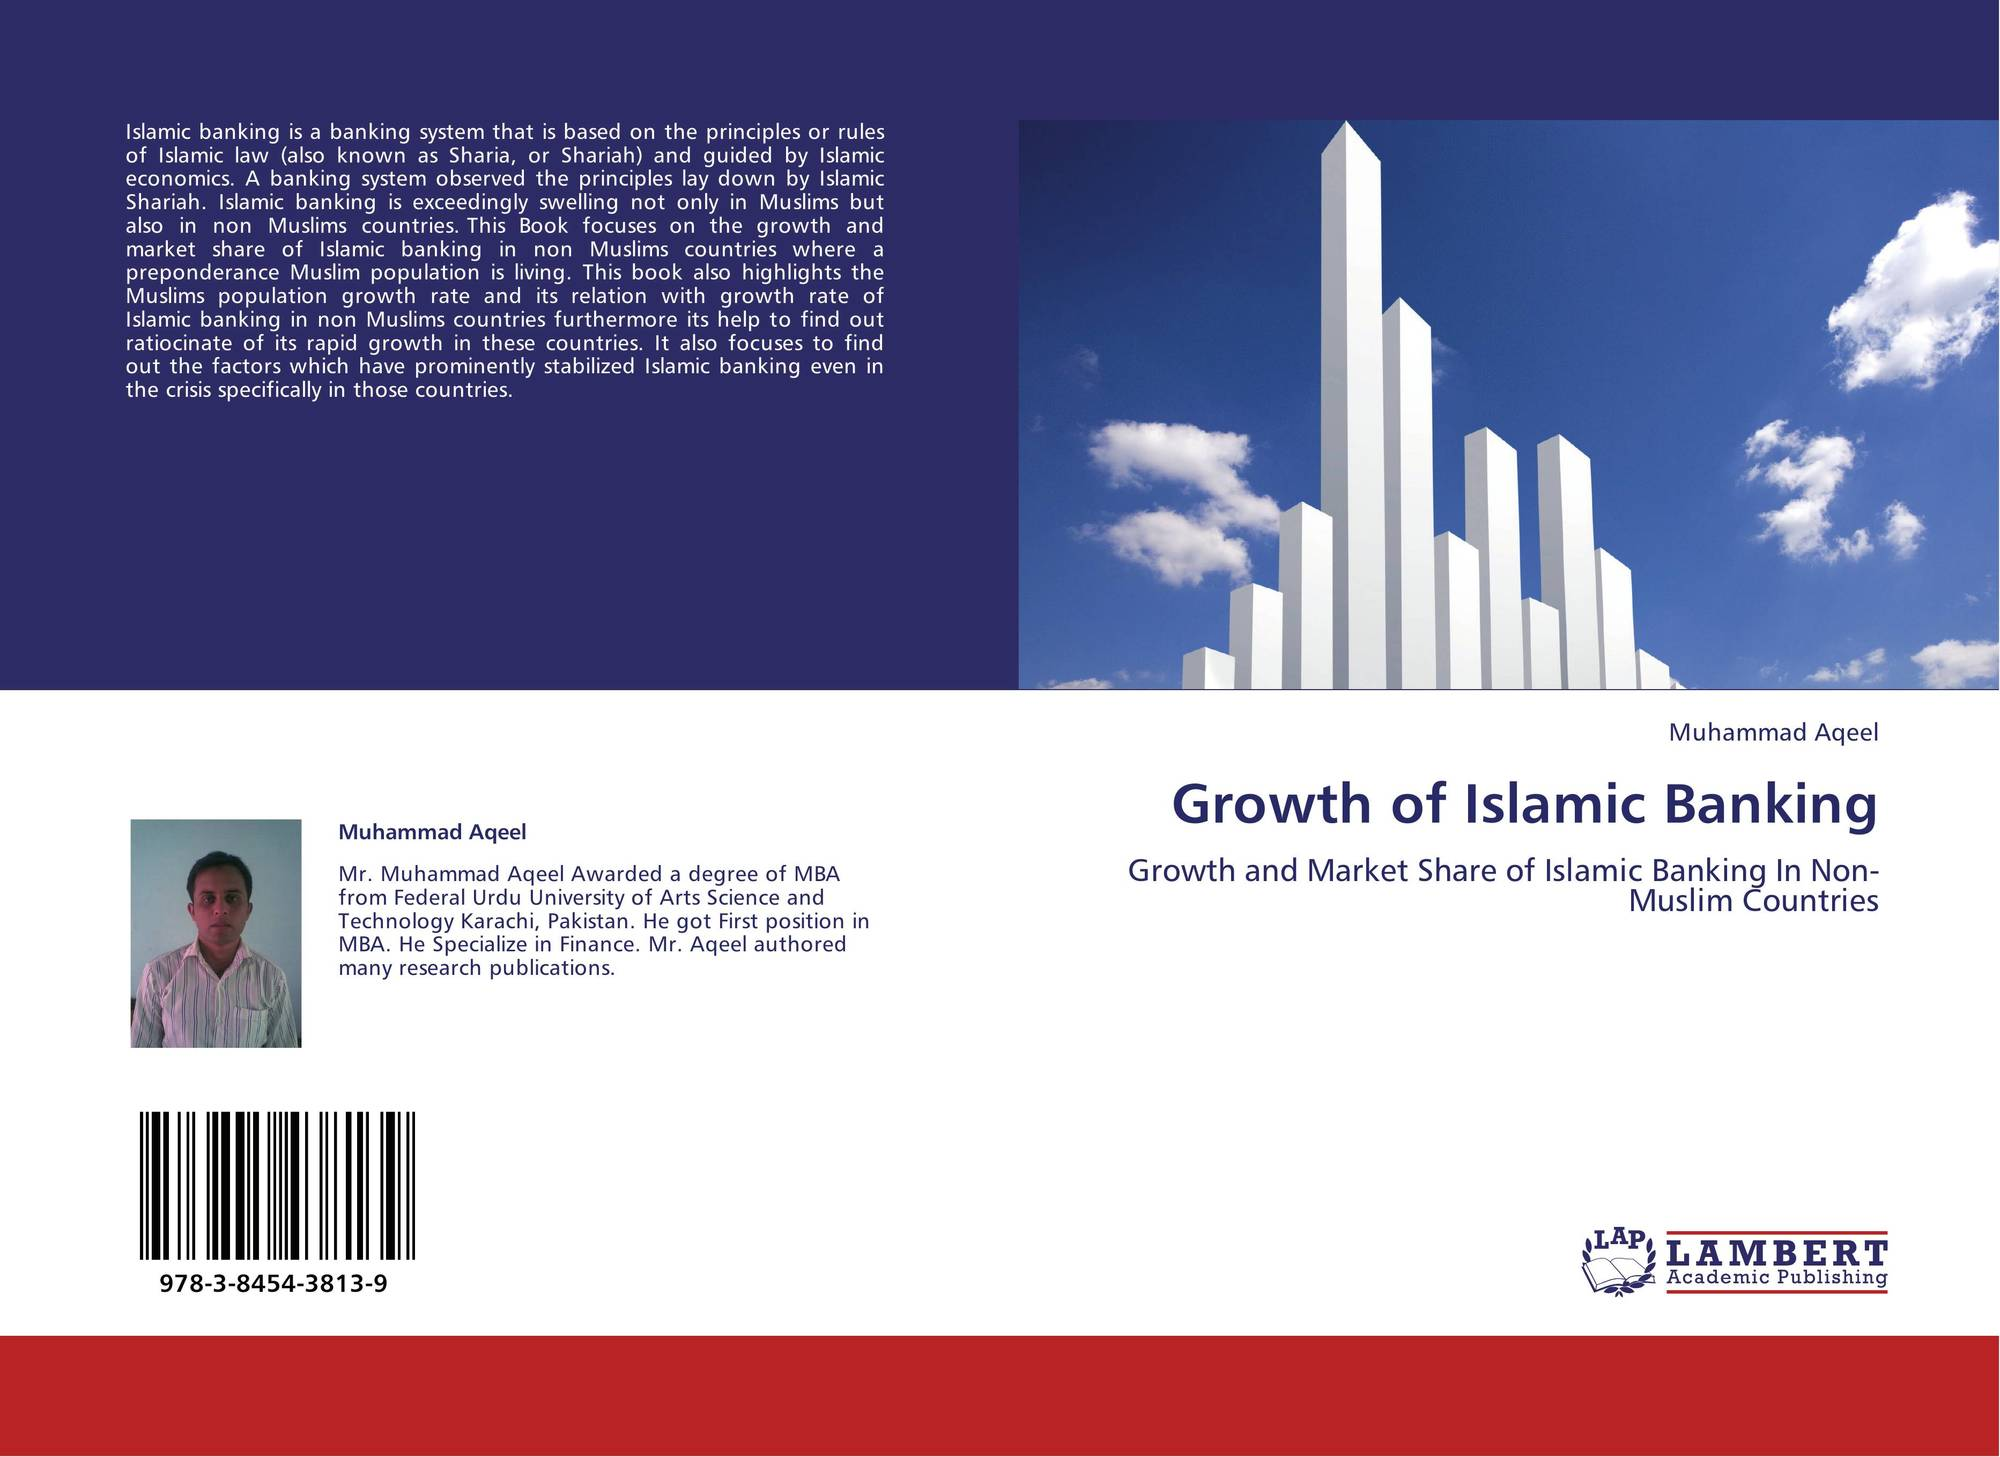 the growth of islamic financial services in uk According to fsa (bank of england and the financial services authority) briefing note (2006) currently islamic banking and finance is growing from 10% to 15% annually in international market and the main reason of this growth is that muslim population in western world.